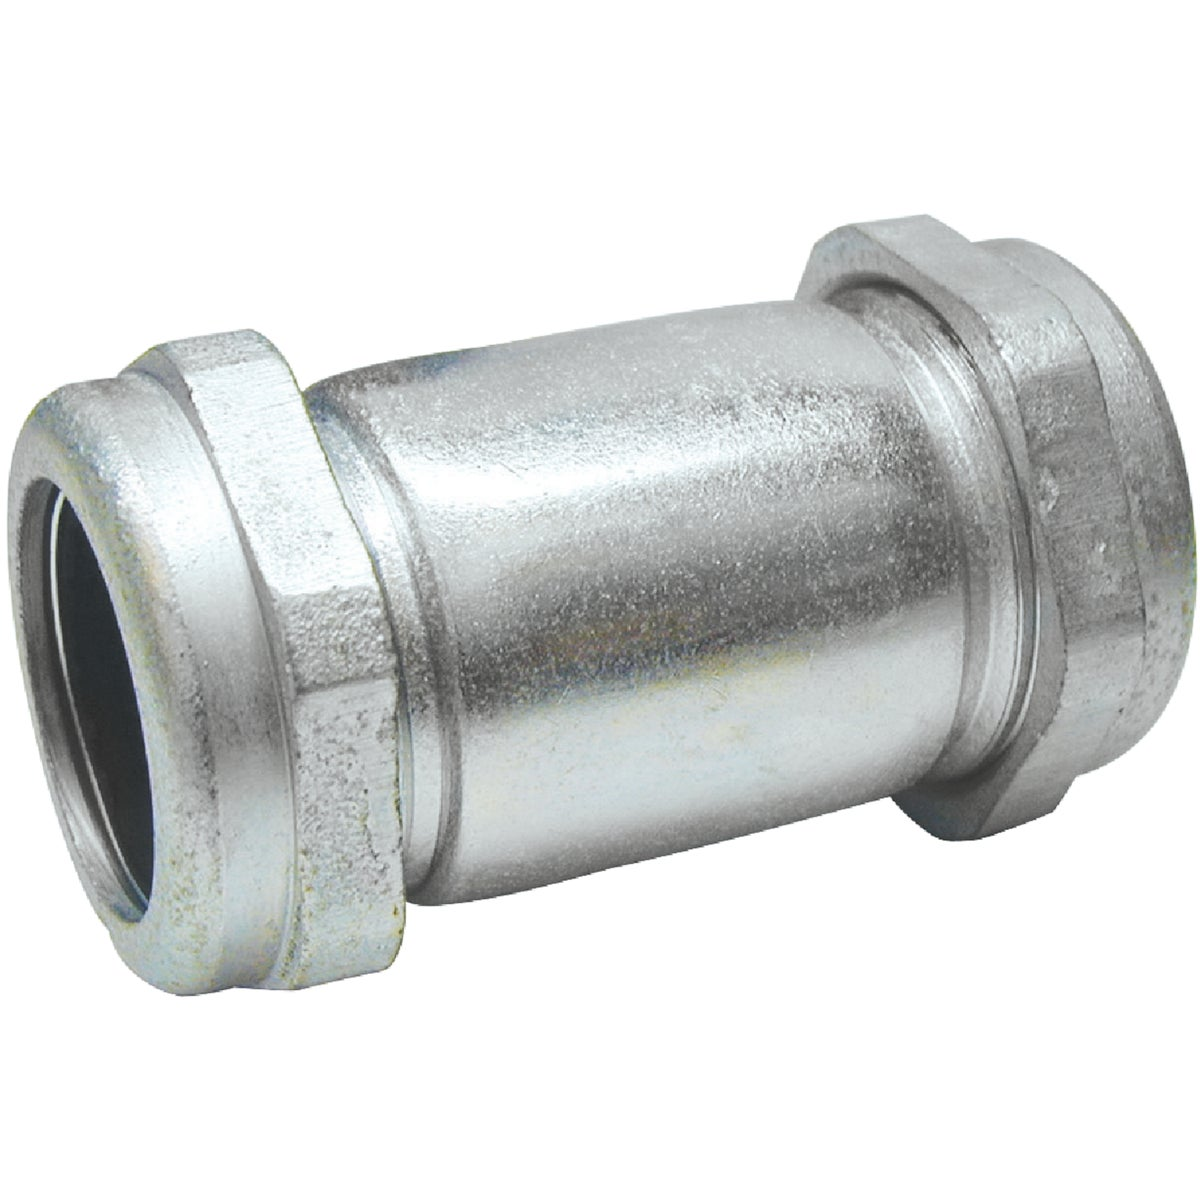 1X4-1/2 GALV COUPLING